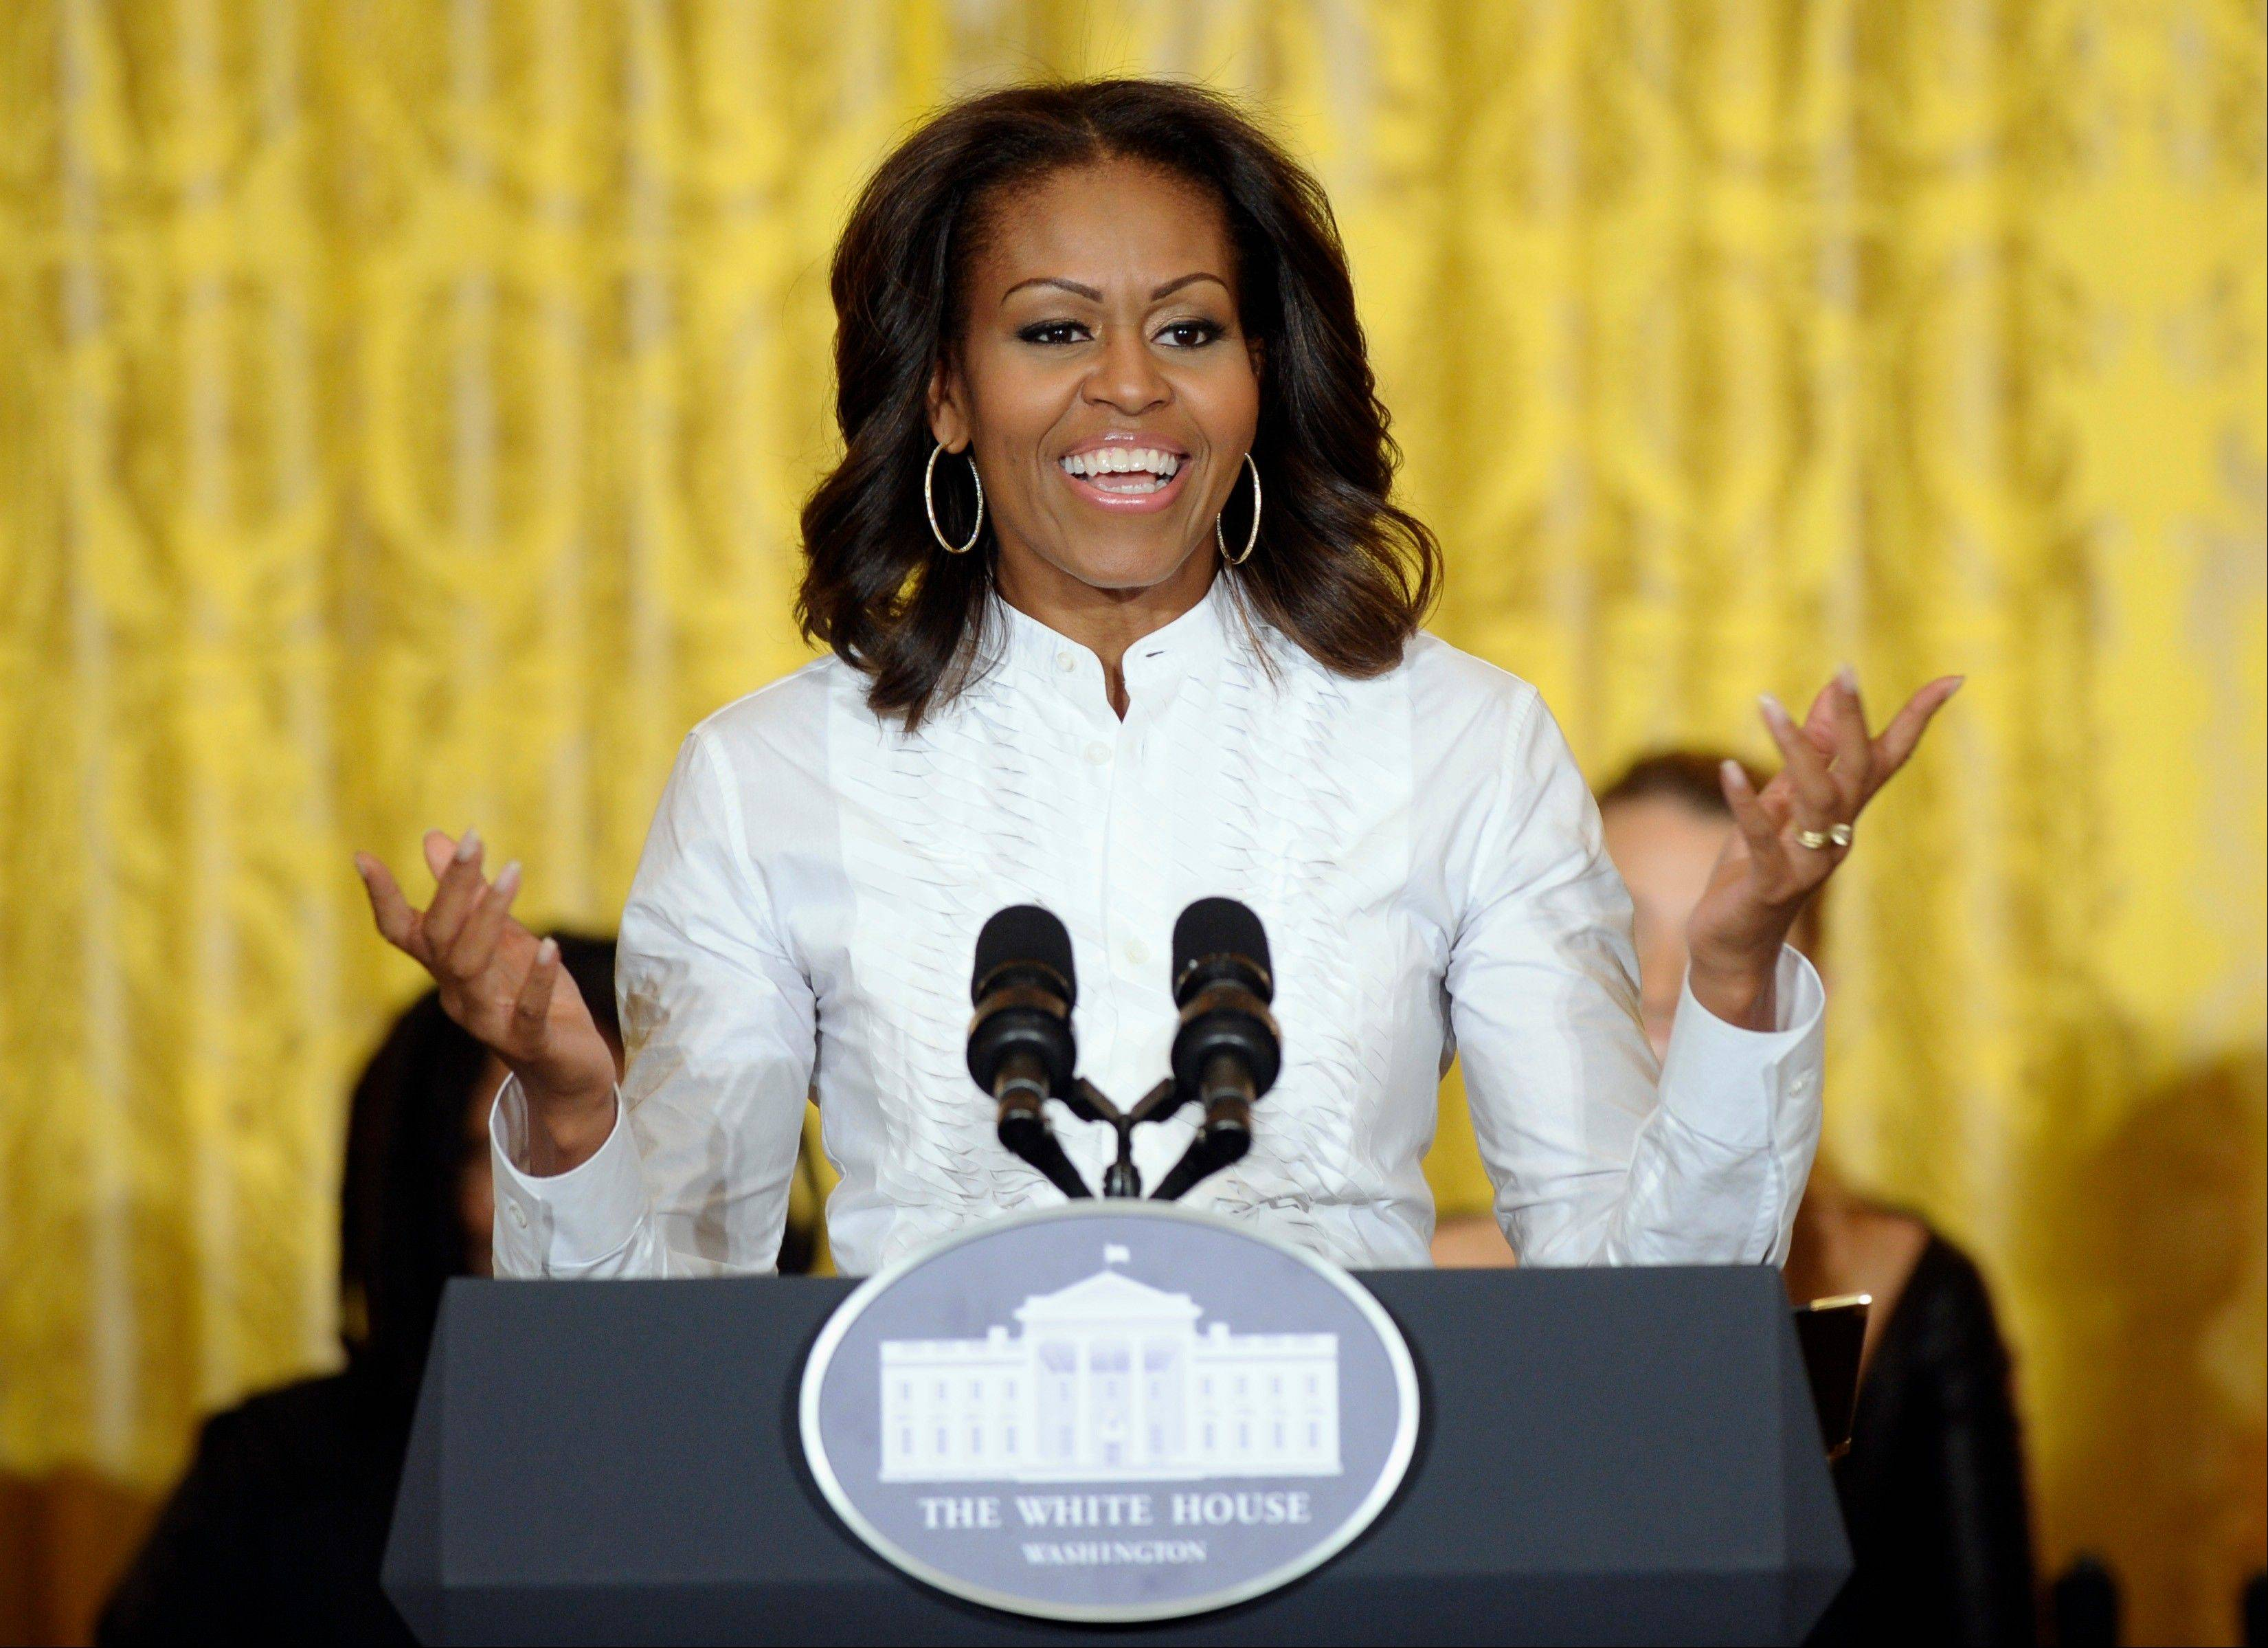 First lady Michelle Obama is joining President Barack Obama�s efforts to get the United States on track to have the highest percentage of college graduates by 2020.